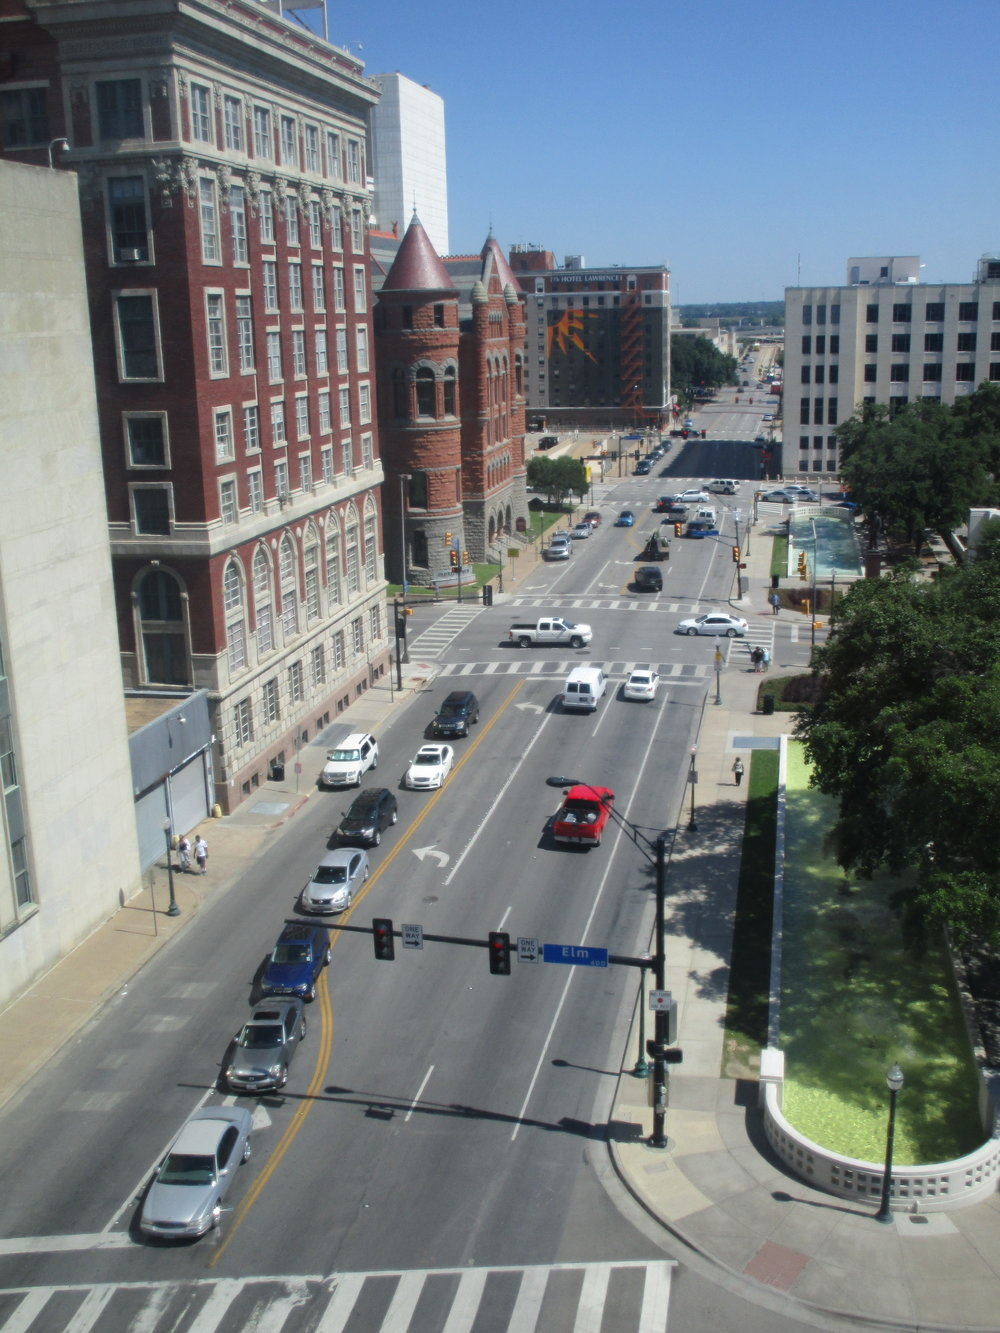 View of Dealey Plaza, where JFK was shot, from the Sixth Floor Museum.